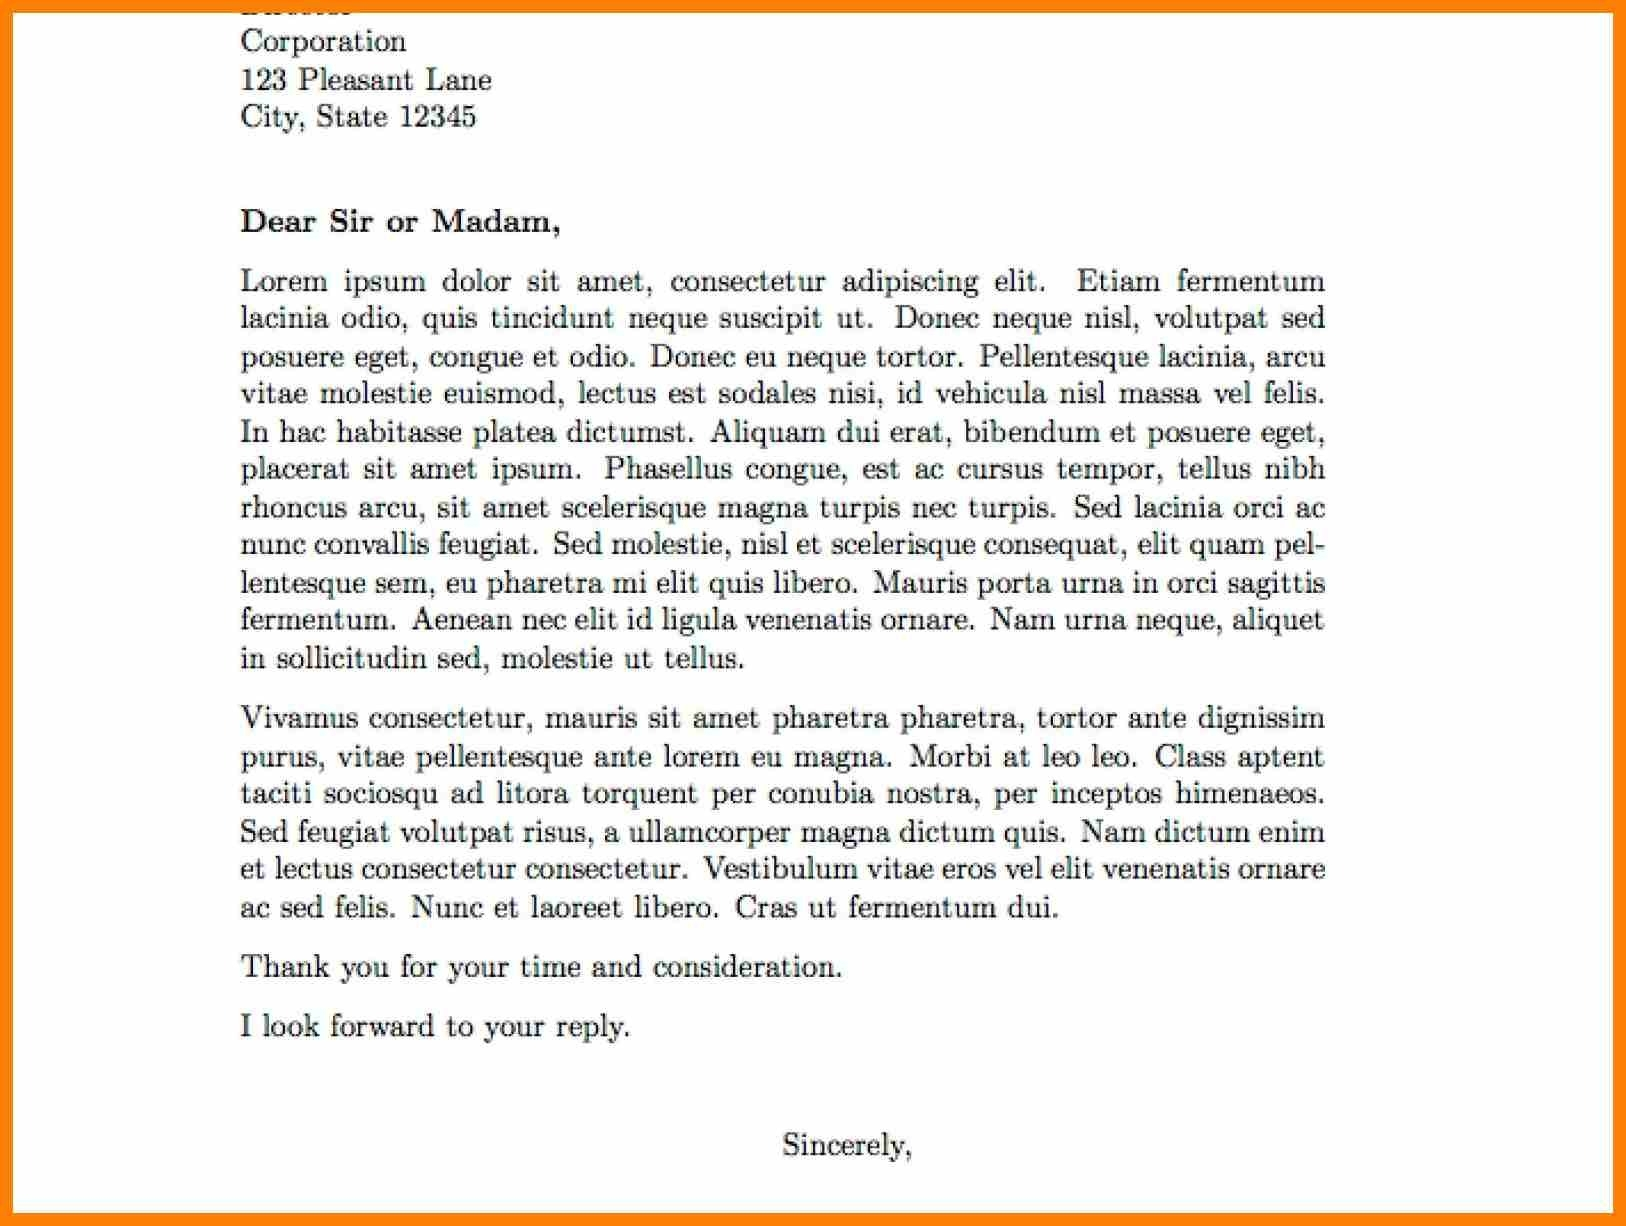 Mission Support Letter Template - How to Write A Missionary Support Letter Choice Image Letter